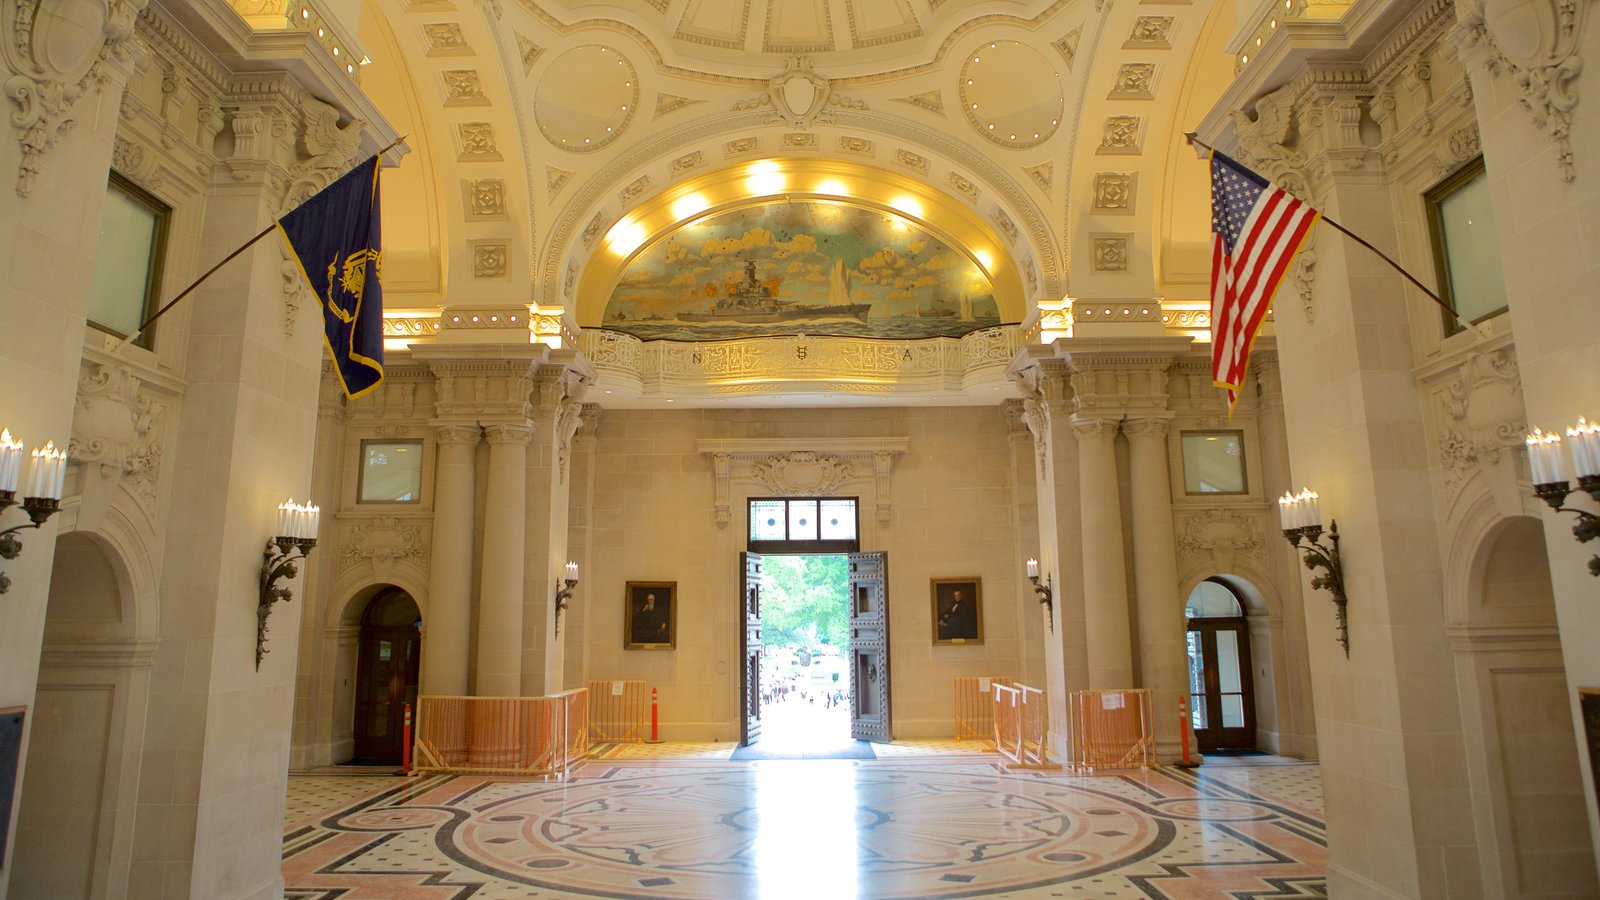 U.S. Naval Academy showing military items, heritage architecture and interior views